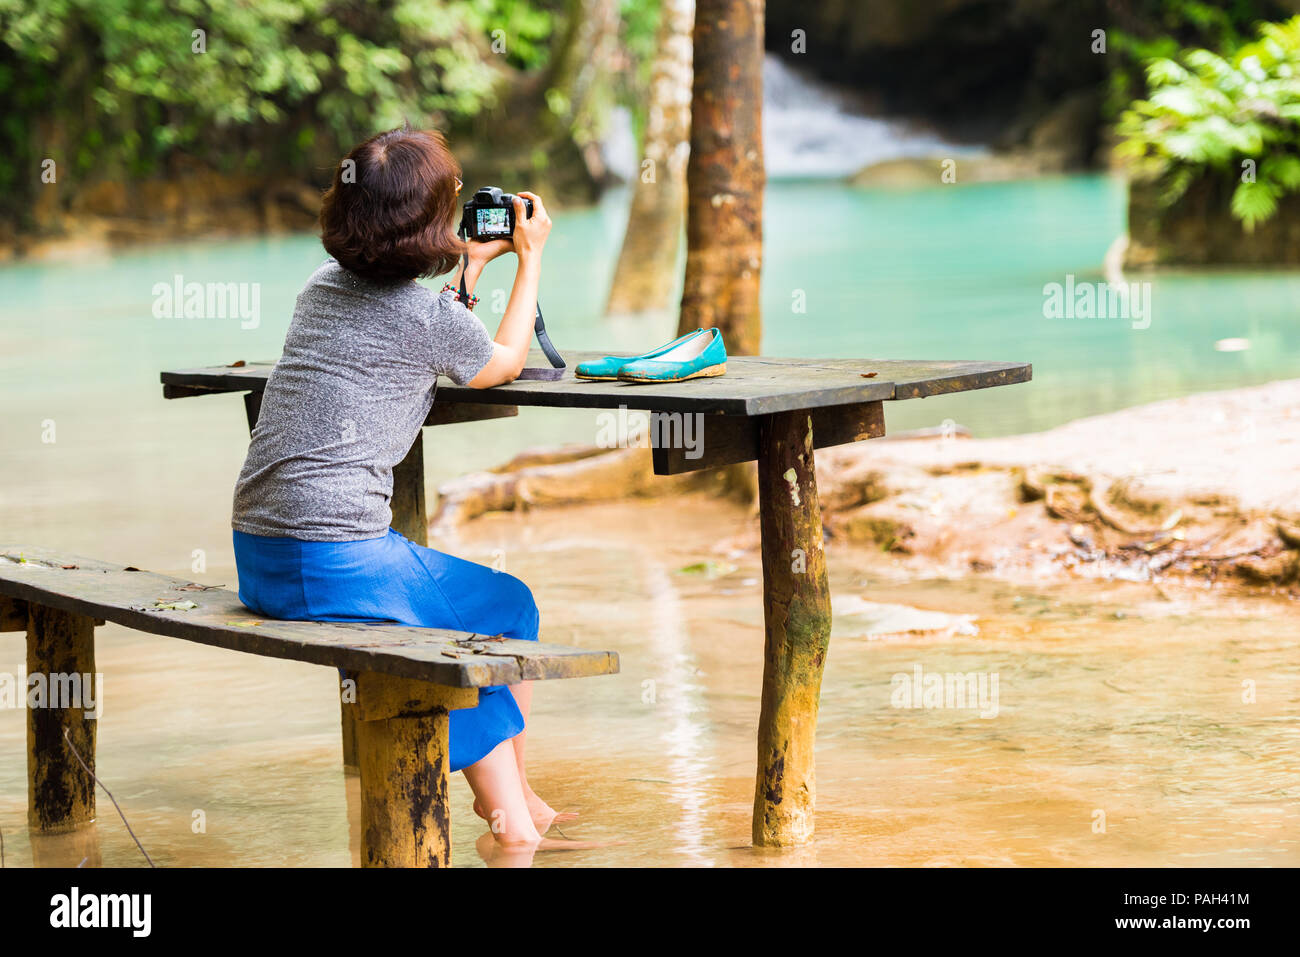 Woman near Kuang Xi Falls, waterfall in area mountain with forest, Luang Prabang, Laos. Copy space for text Stock Photo